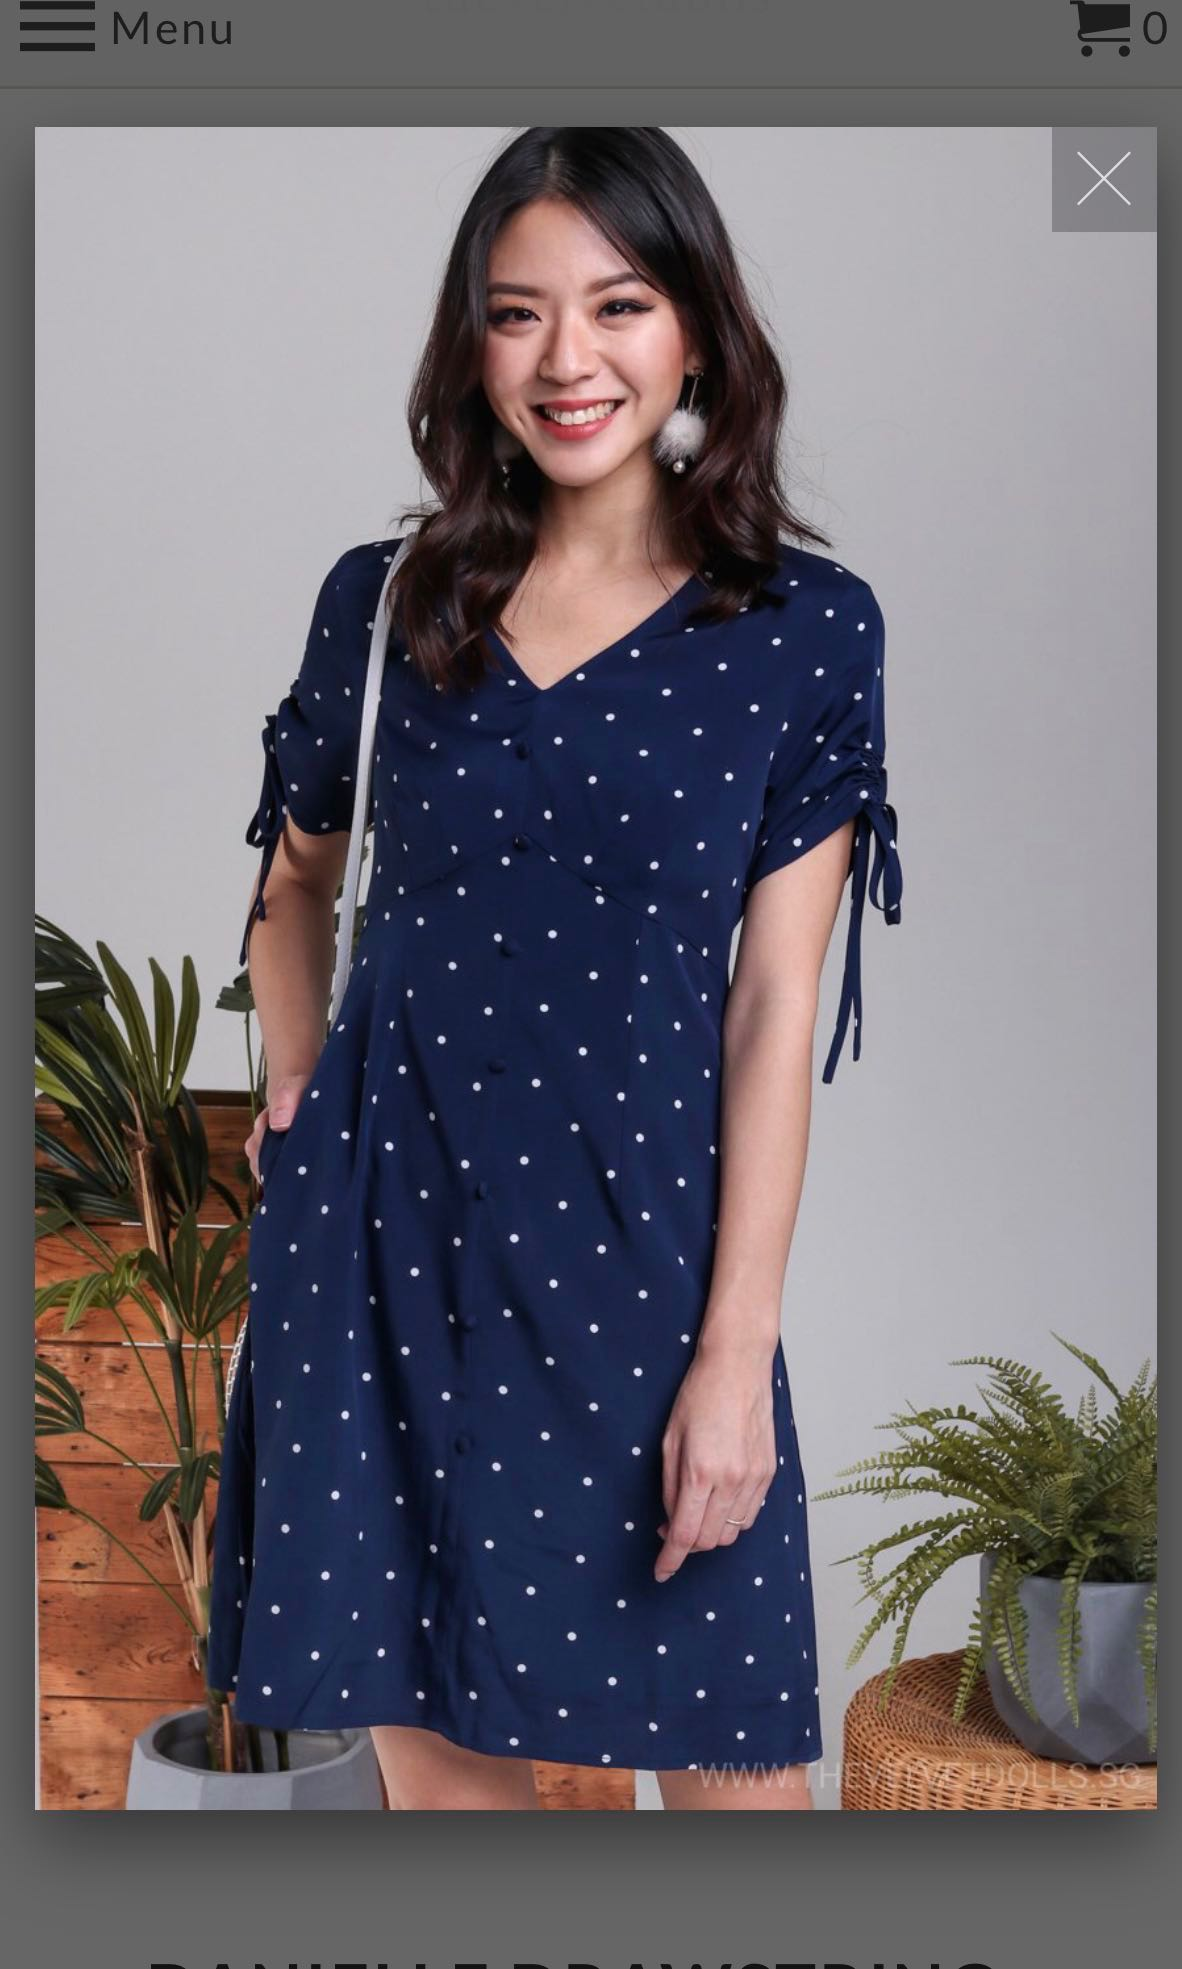 6558a96b039 TVD DANIELLE DRAWSTRING SLEEVE DRESS IN NAVY